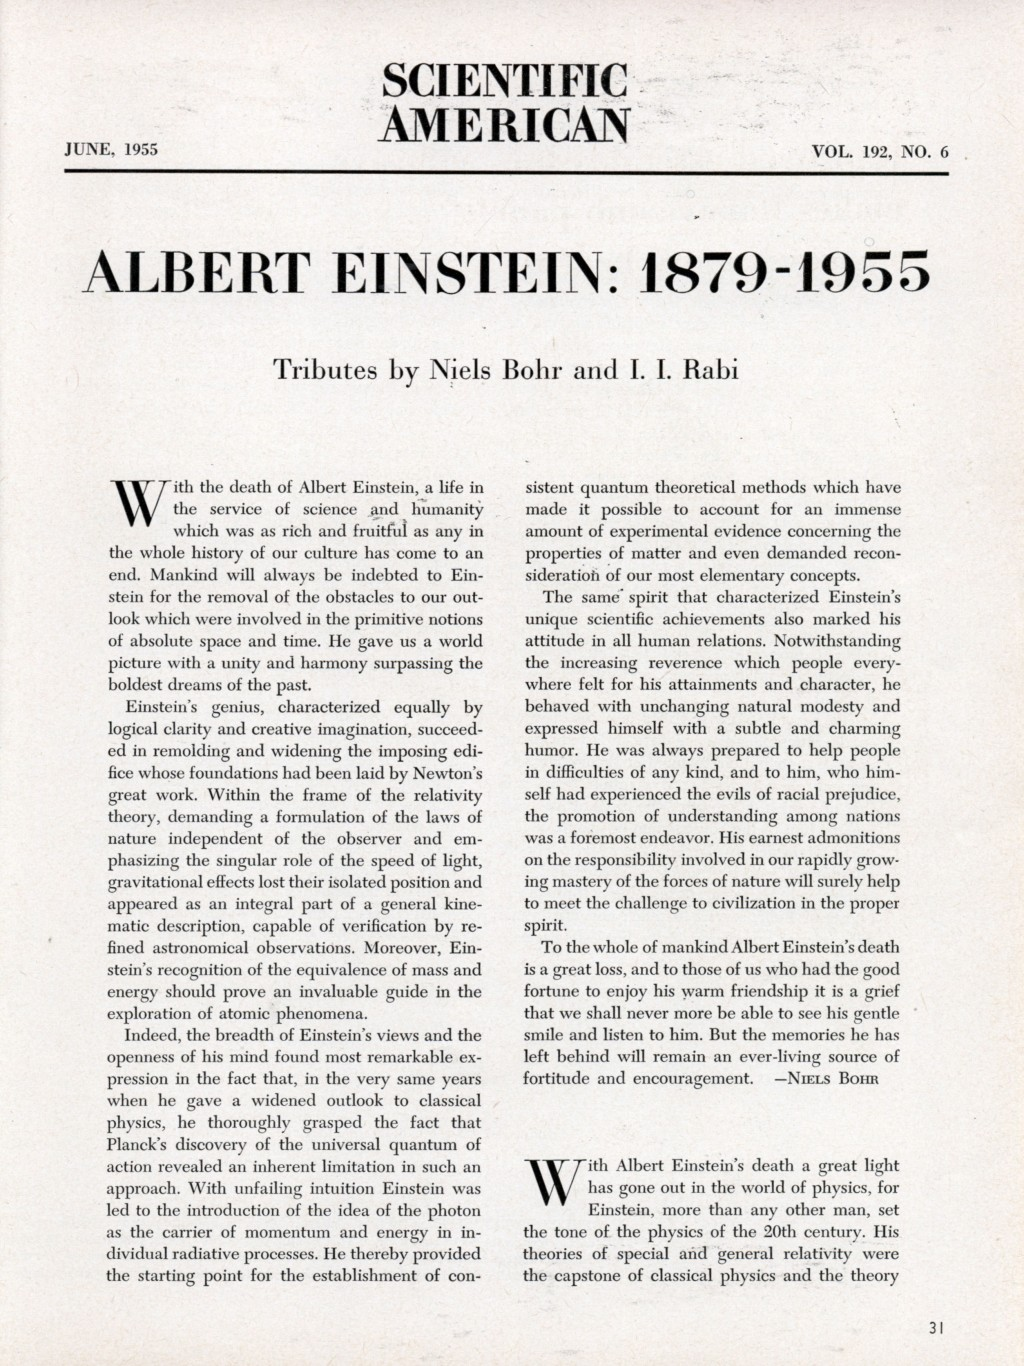 001 Albert Einstein Essay Example Awesome Pdf Essays In Humanism 200 Words Large